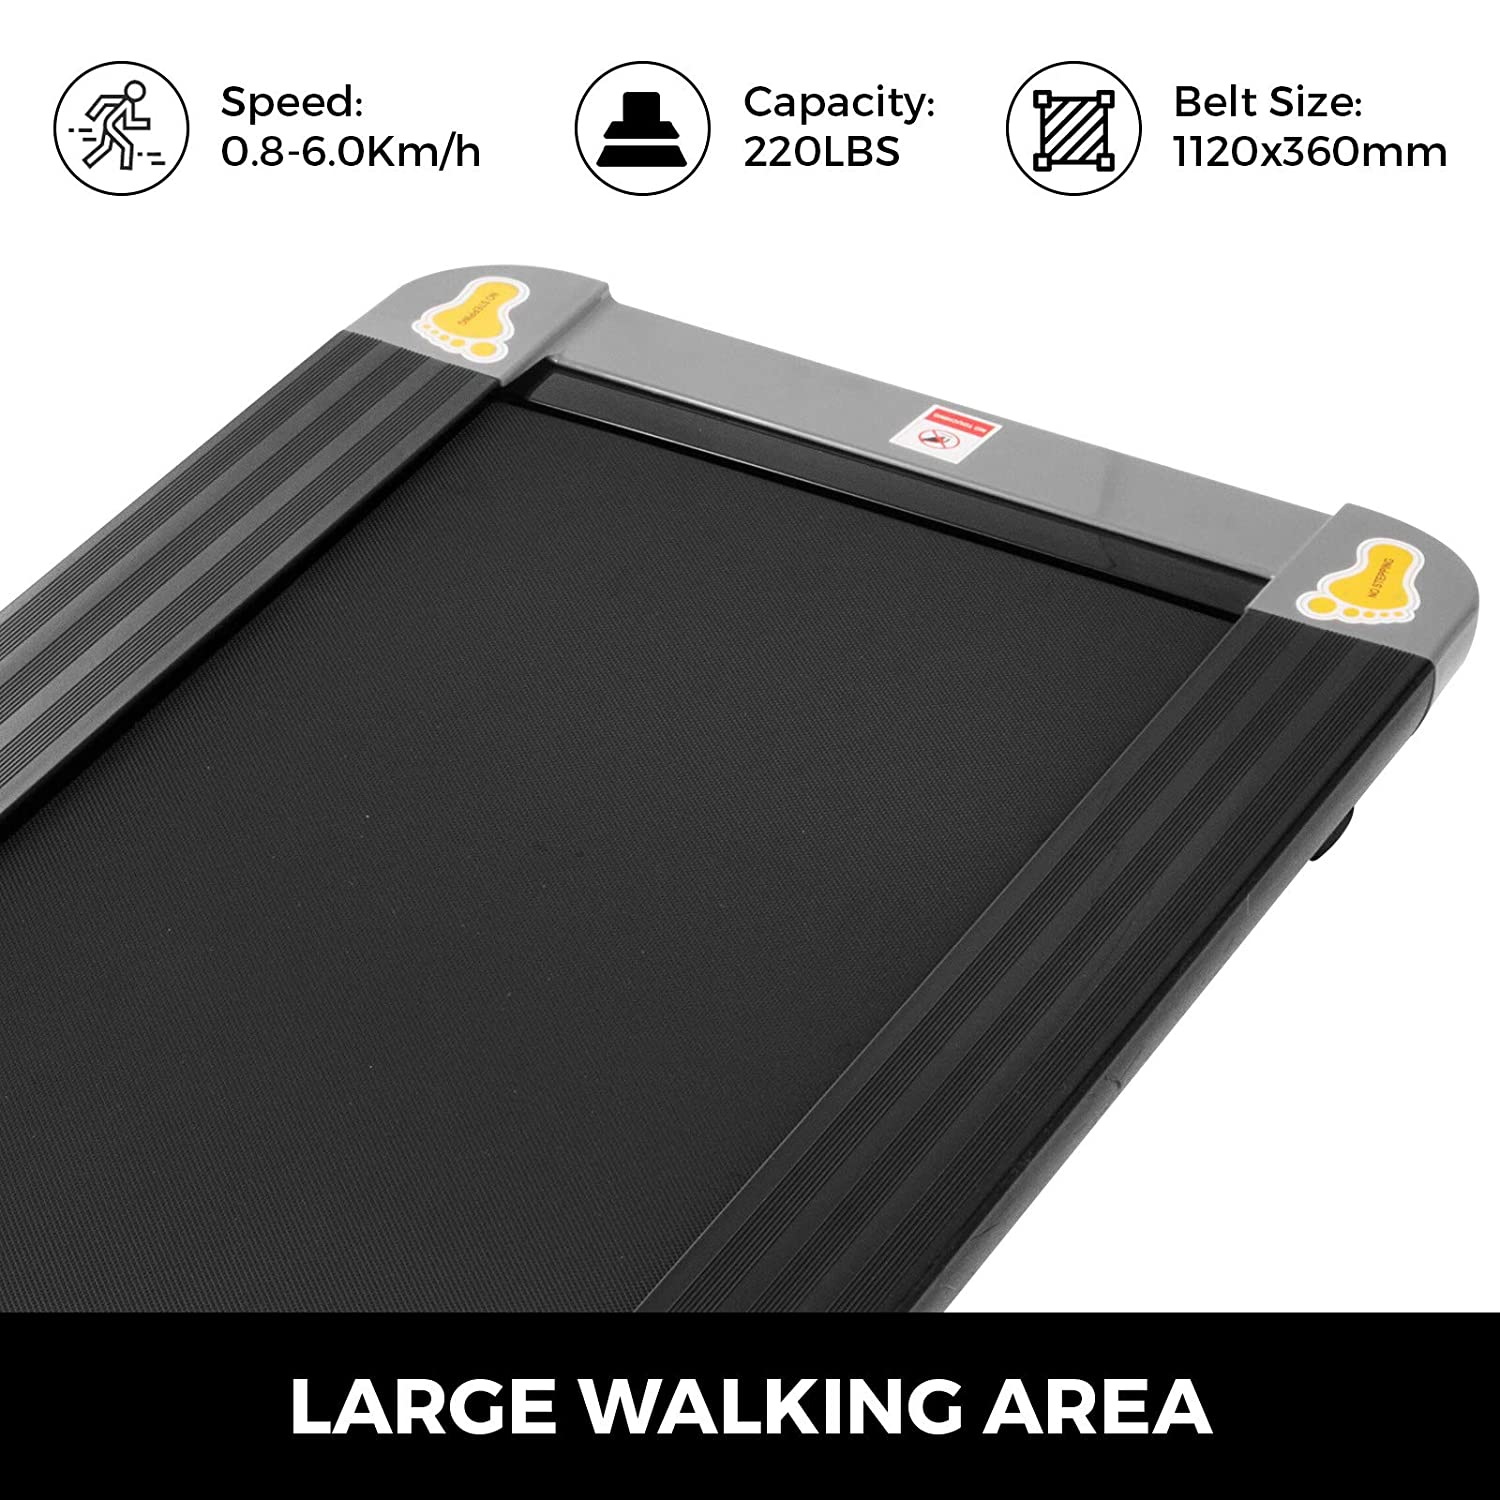 Popsport Under Desk Treadmill Digital Electric Portable Walking Pad Smart Slim Folding Fitness Jogging Training Cardio Workout for Home Office